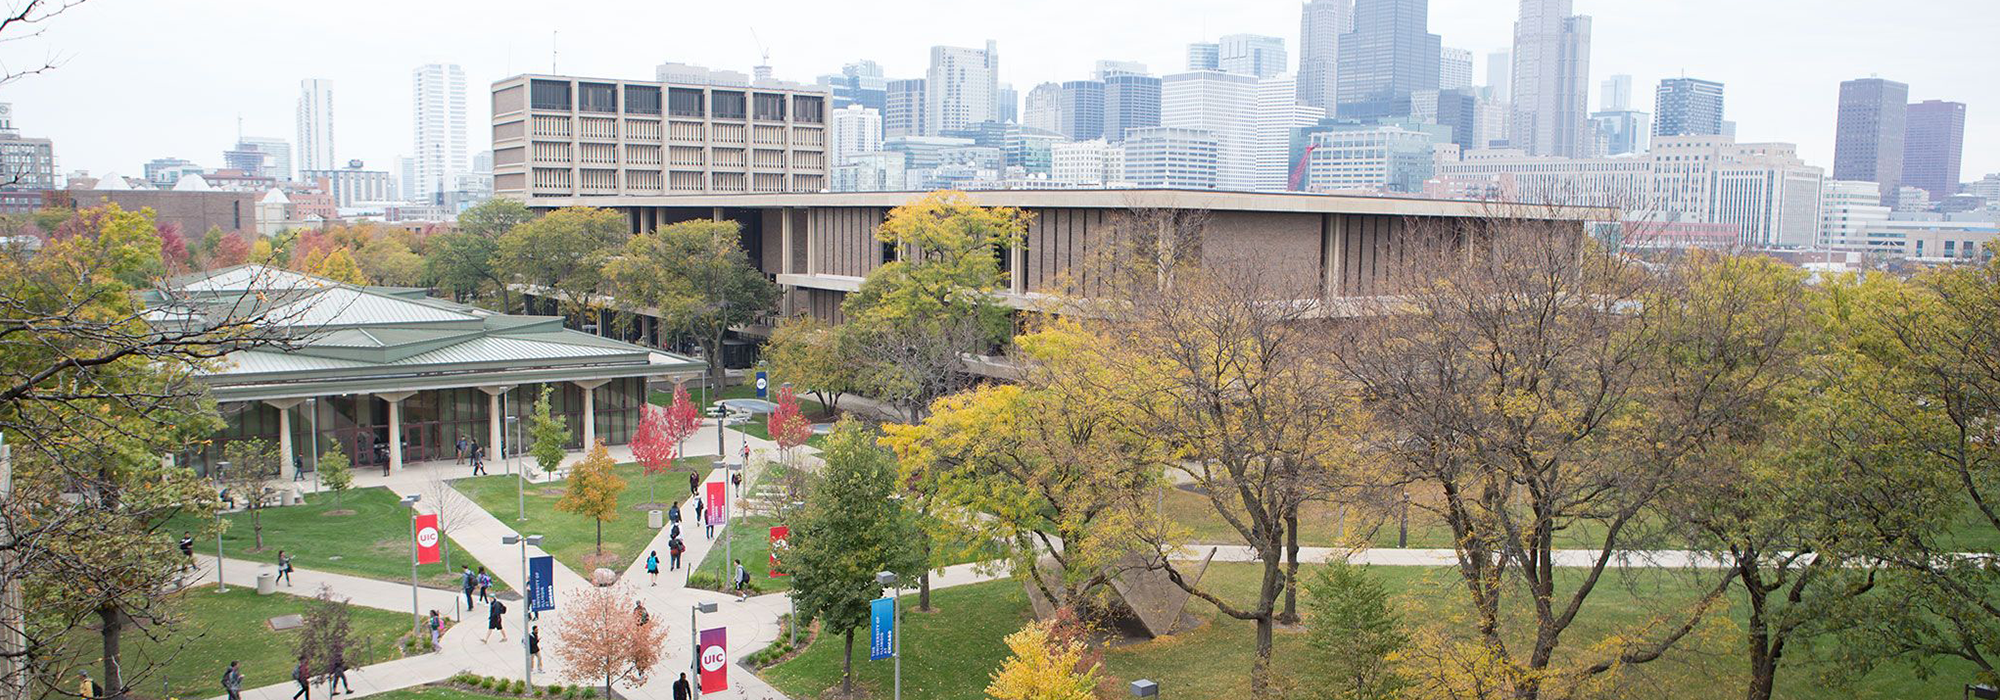 UIC University Chicago